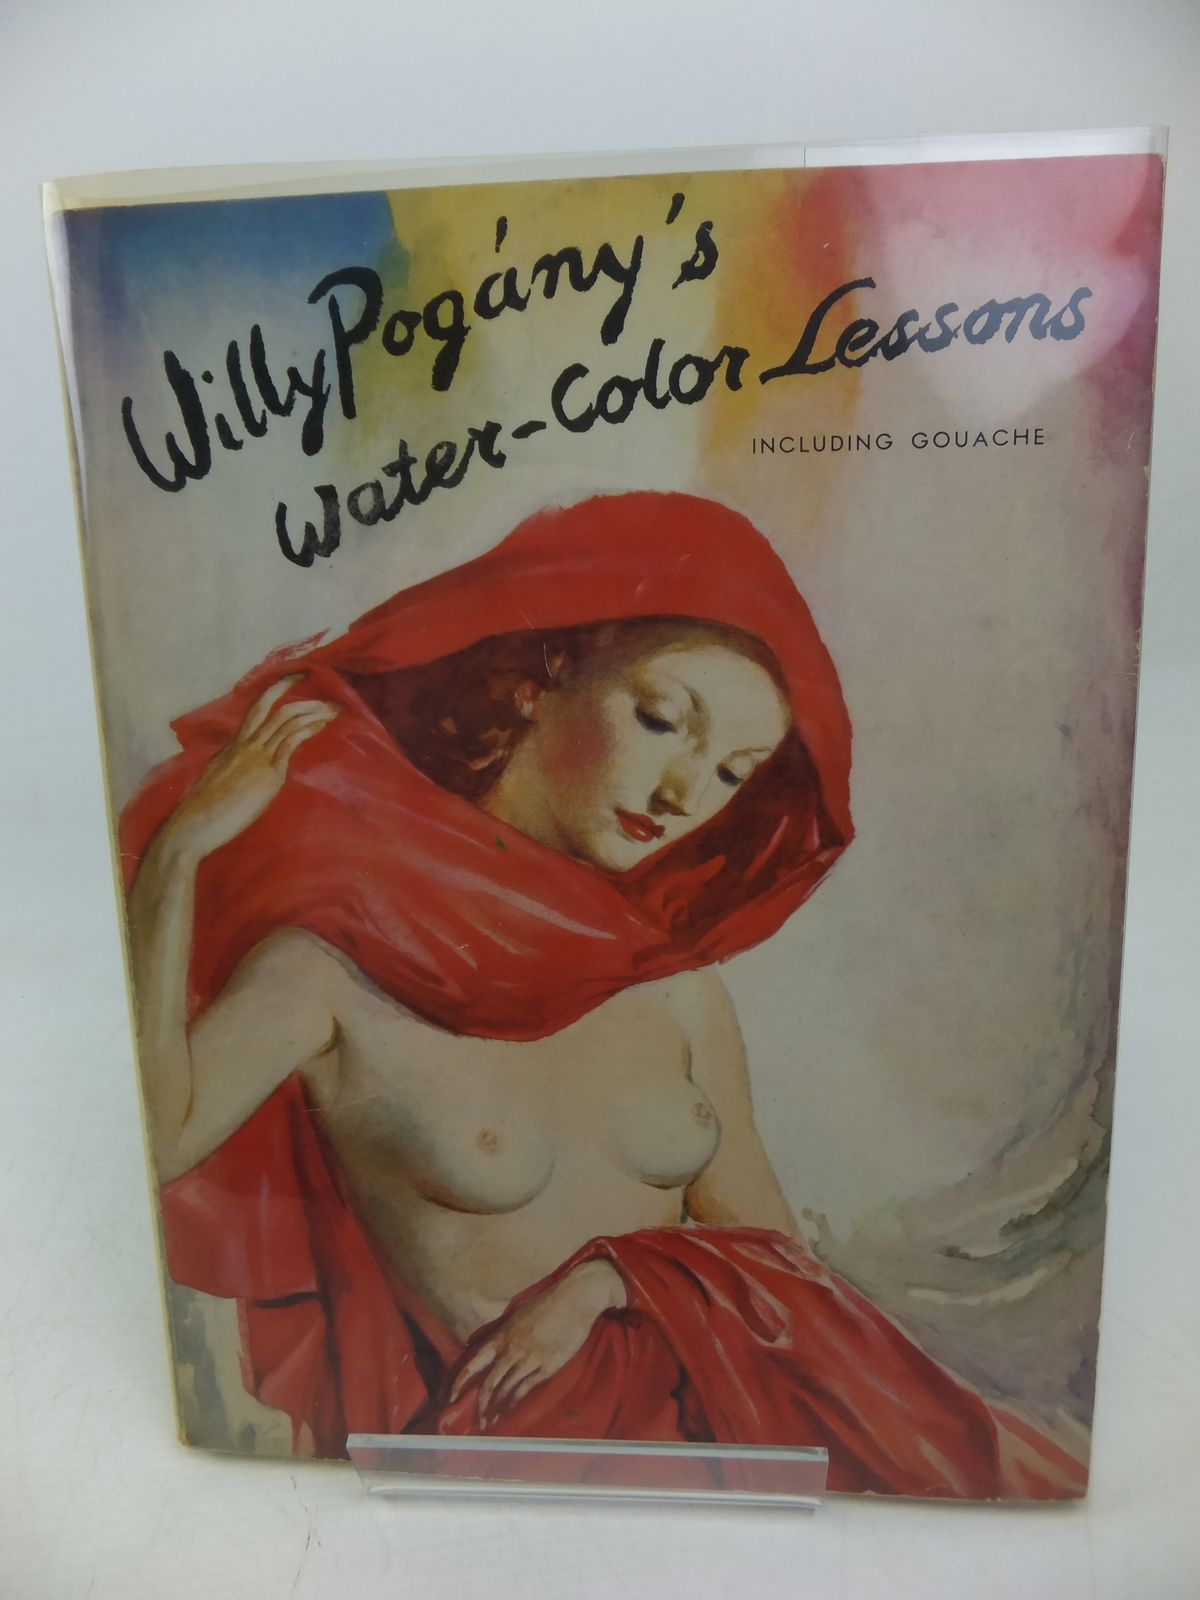 Photo of WILLY POGANY'S WATER-COLOR LESSONS illustrated by Pogany, Willy published by David McKay Company (STOCK CODE: 2113116)  for sale by Stella & Rose's Books